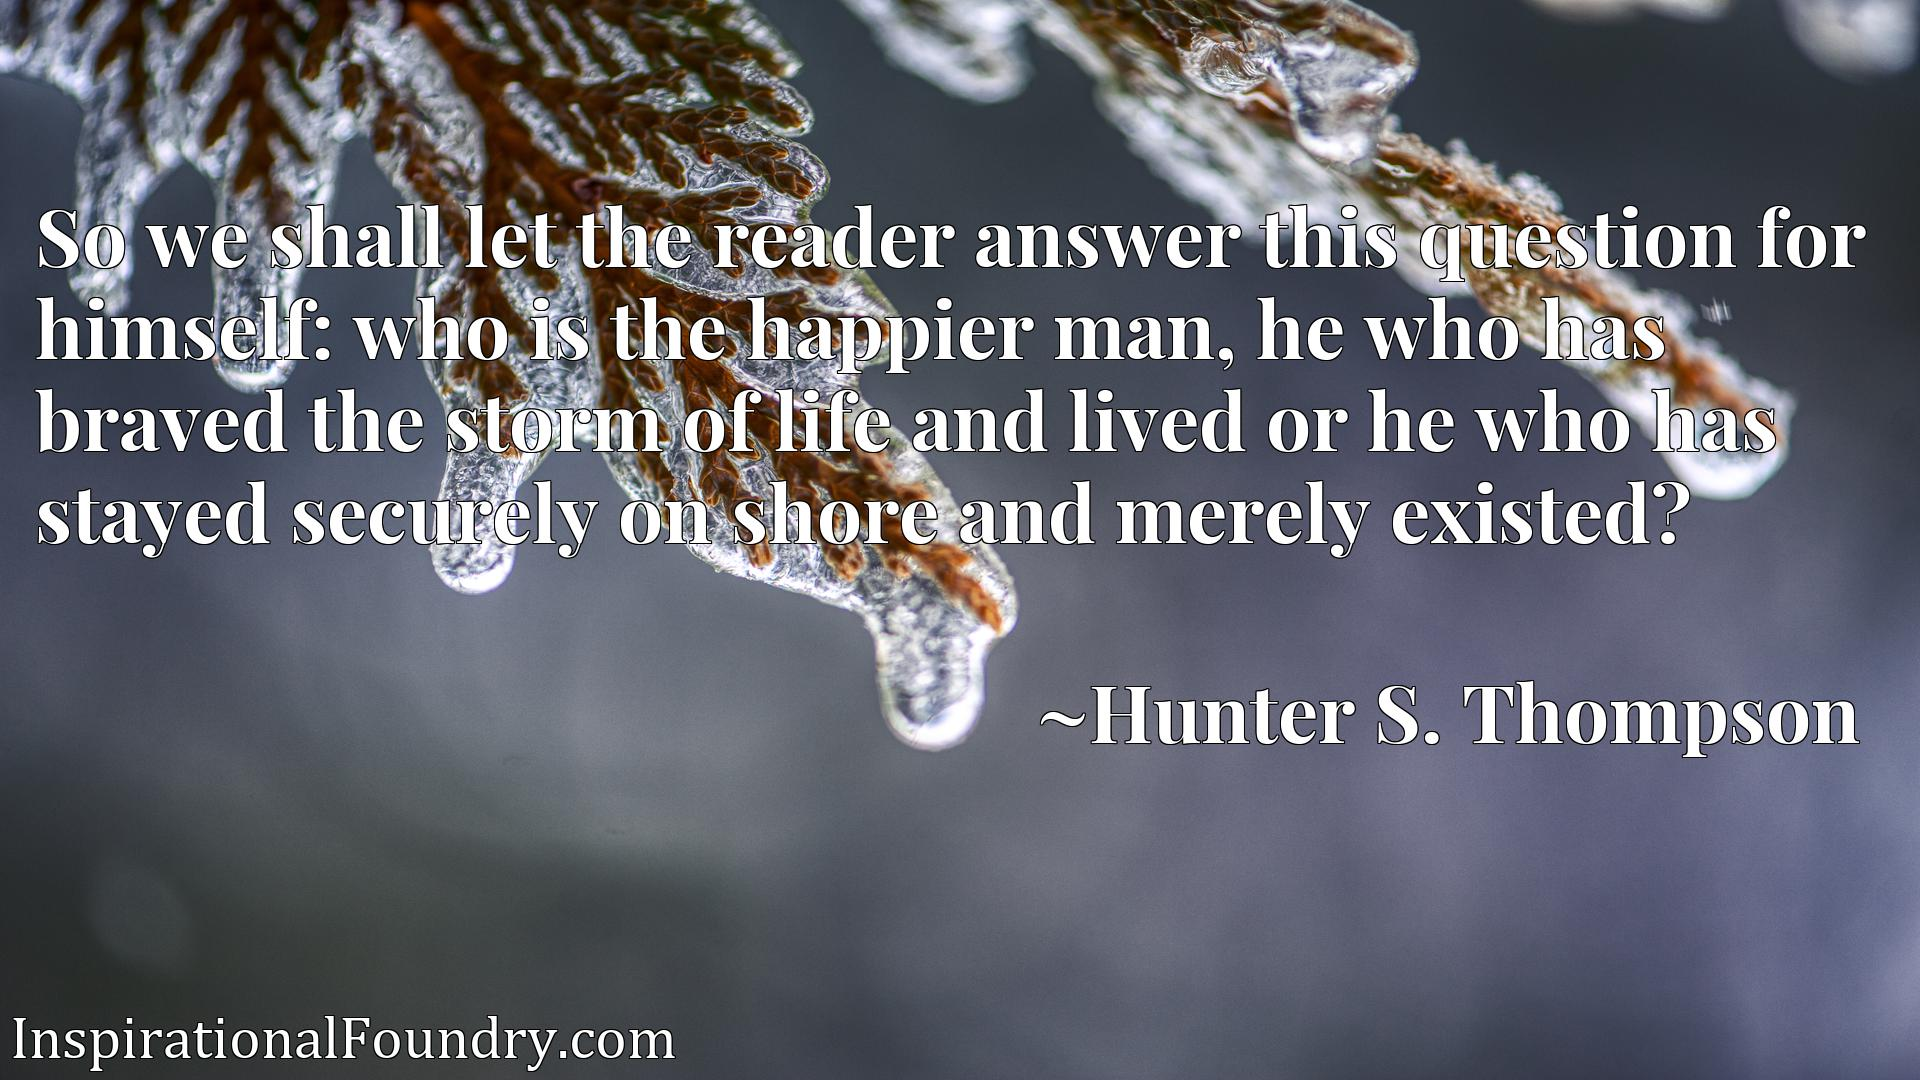 So we shall let the reader answer this question for himself: who is the happier man, he who has braved the storm of life and lived or he who has stayed securely on shore and merely existed?